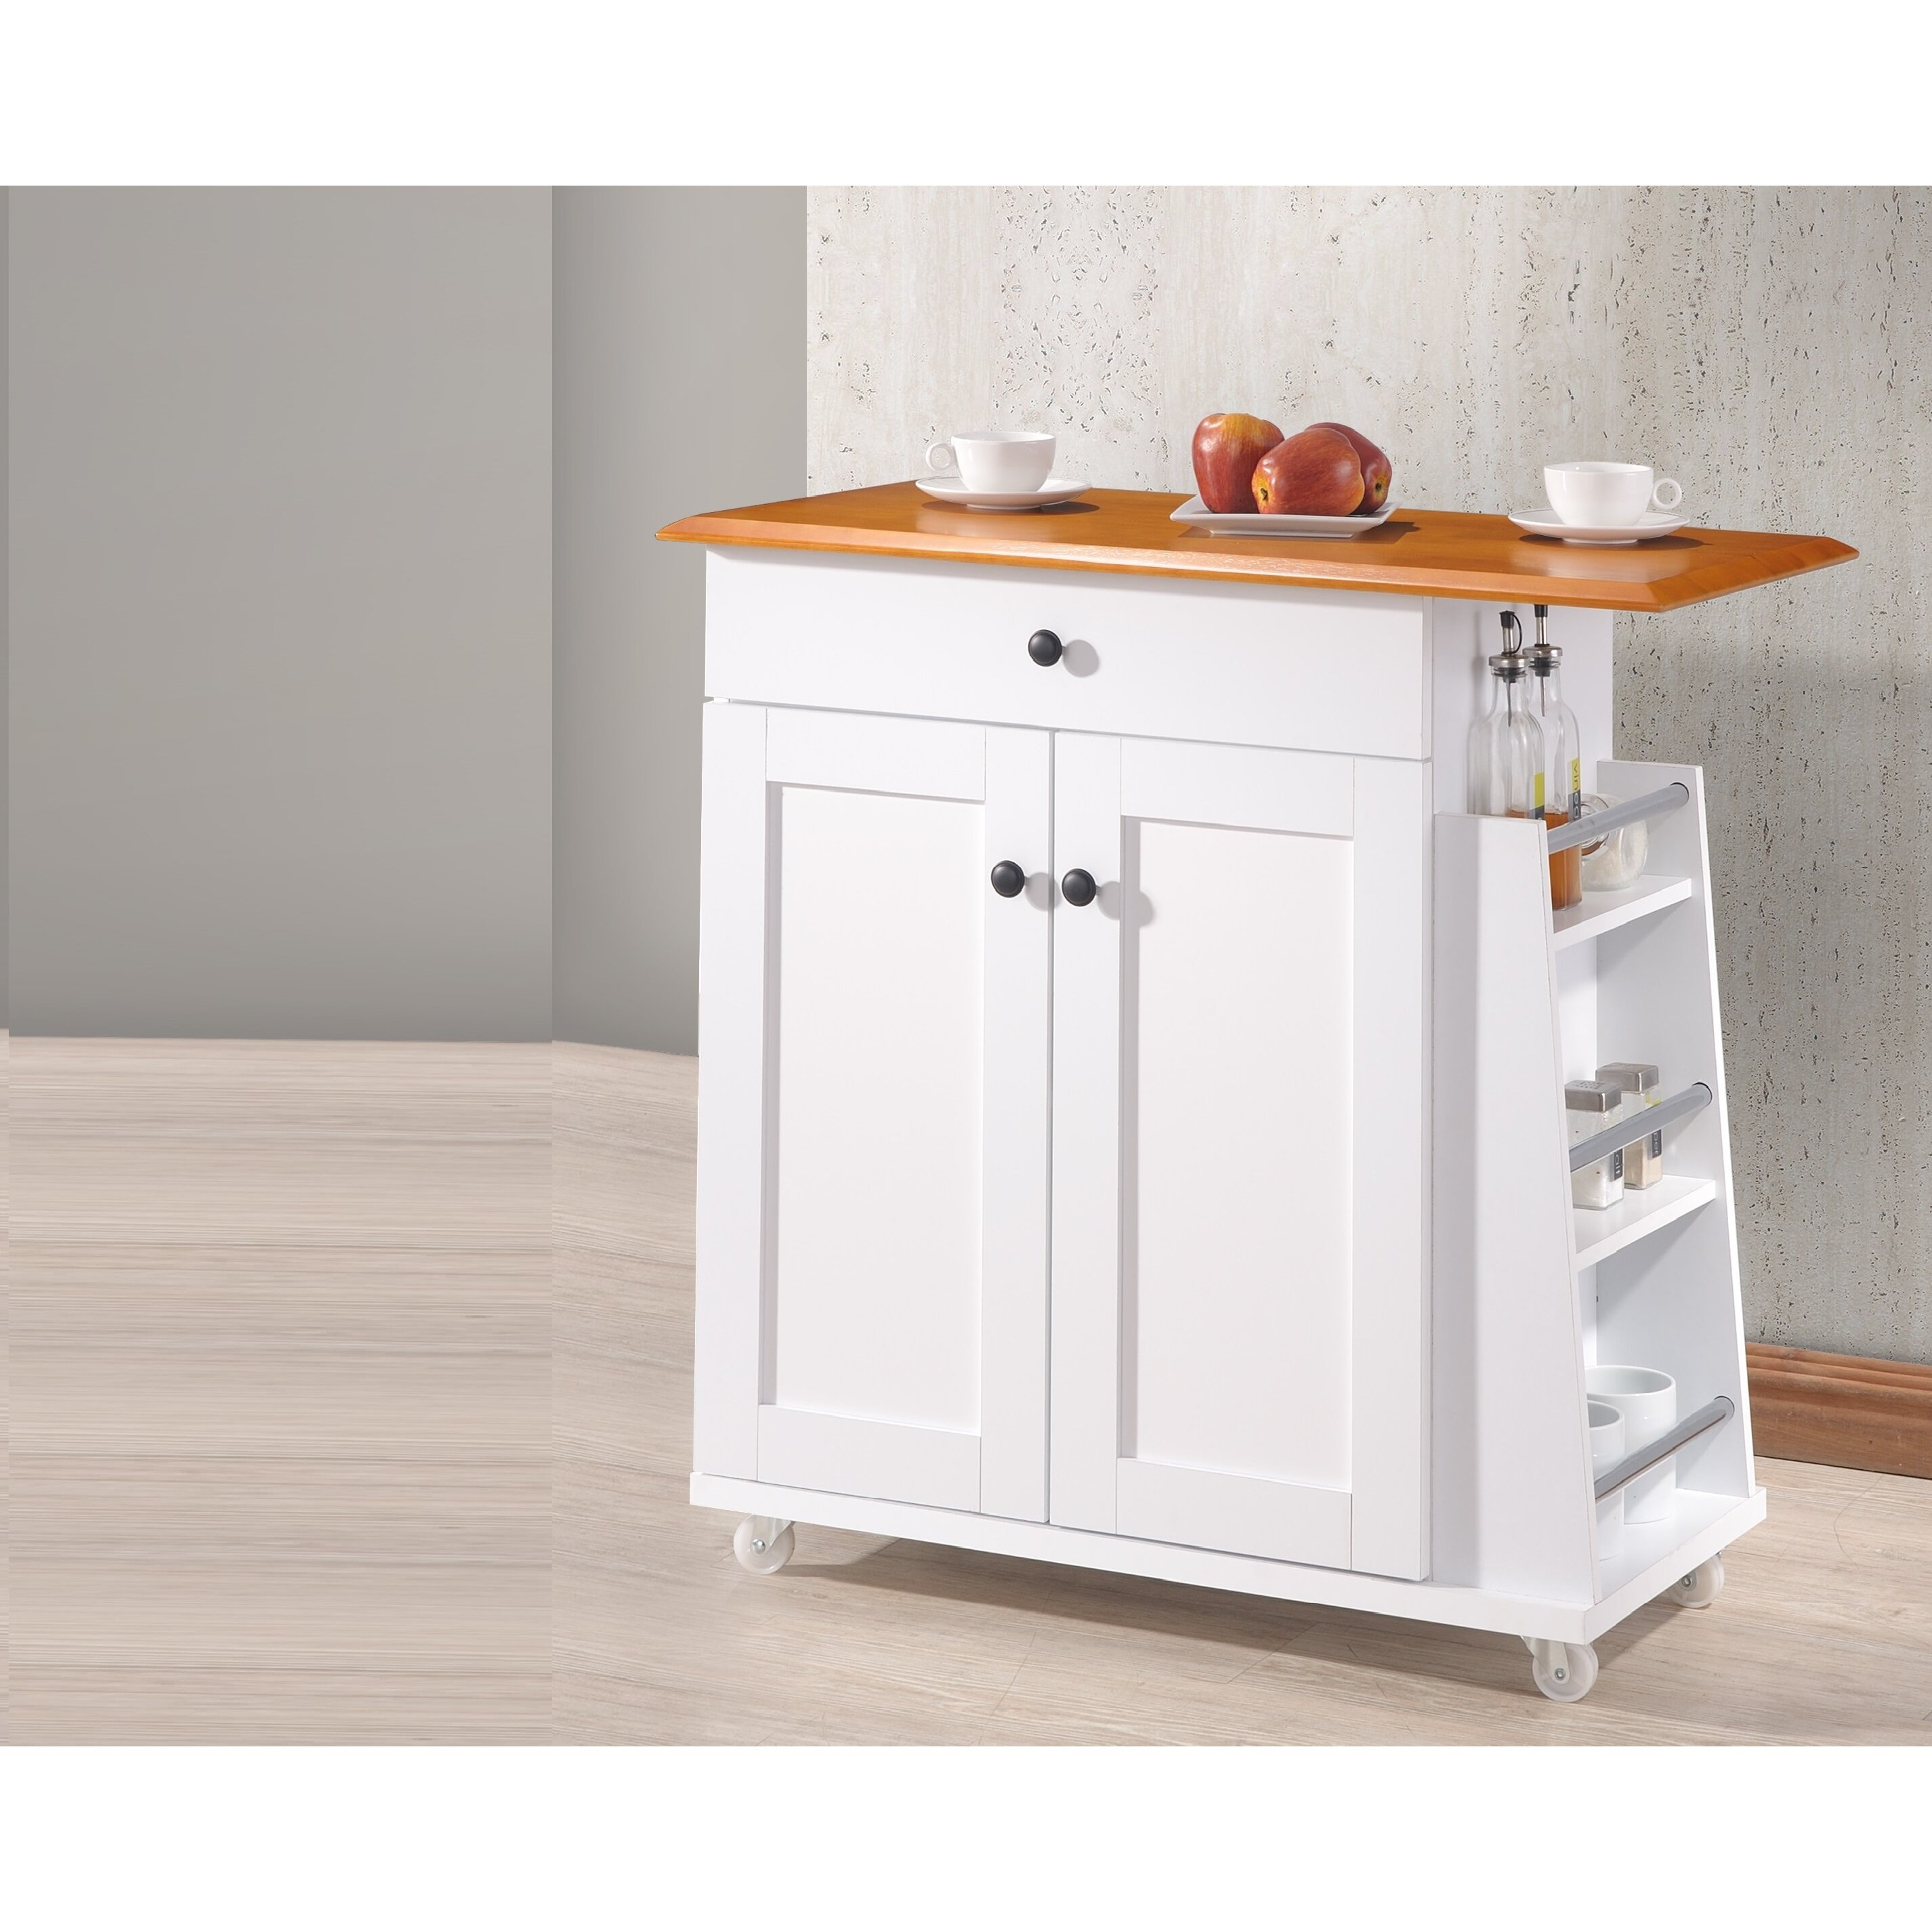 Wholesale Interiors Baxton Studio Kitchen Cart & Reviews